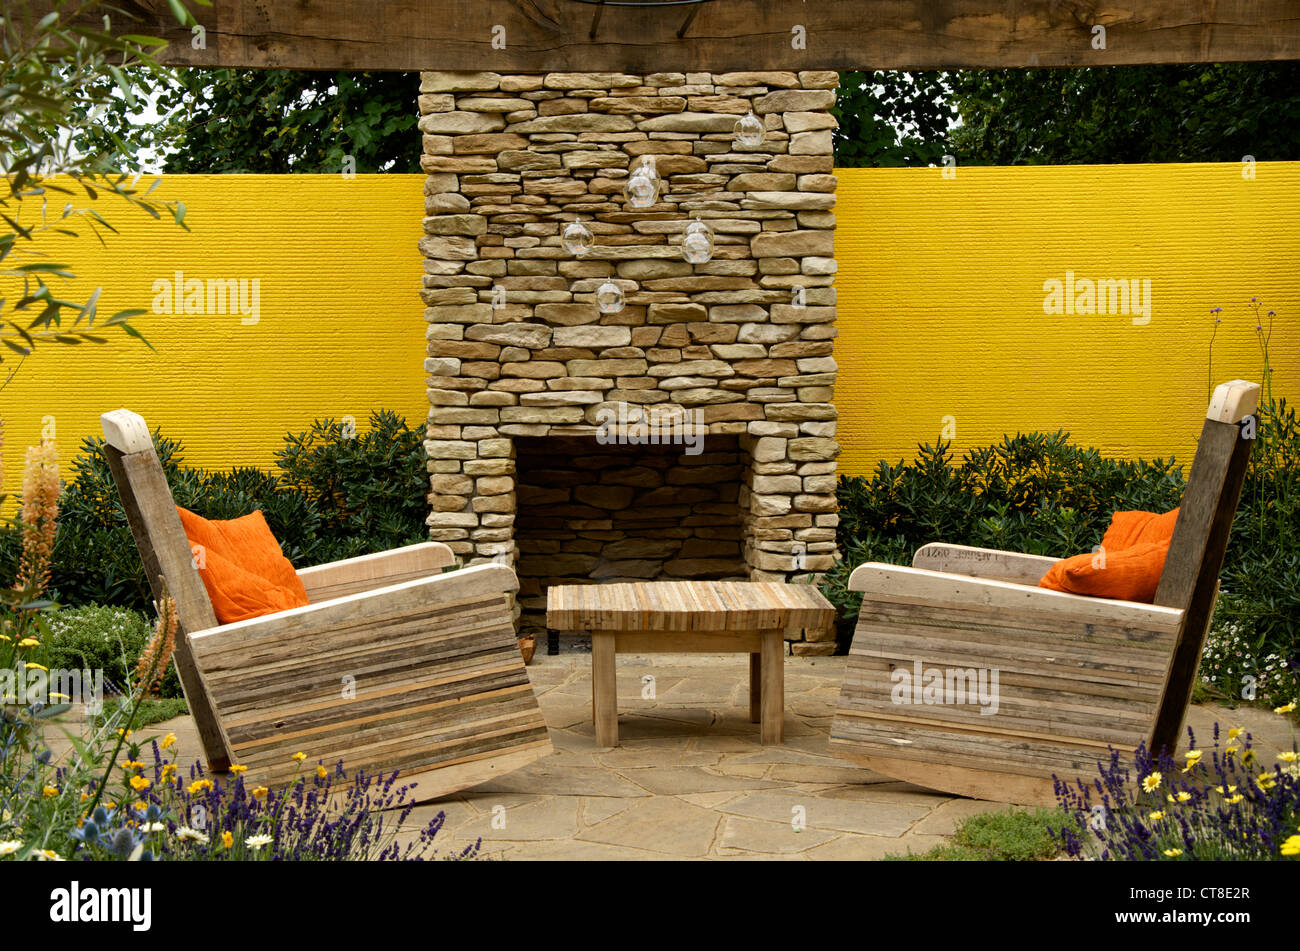 'Summer in the Garden' at Hampton Court Palace Flower Show 2012, a low cost high impact show garden designed - Stock Image